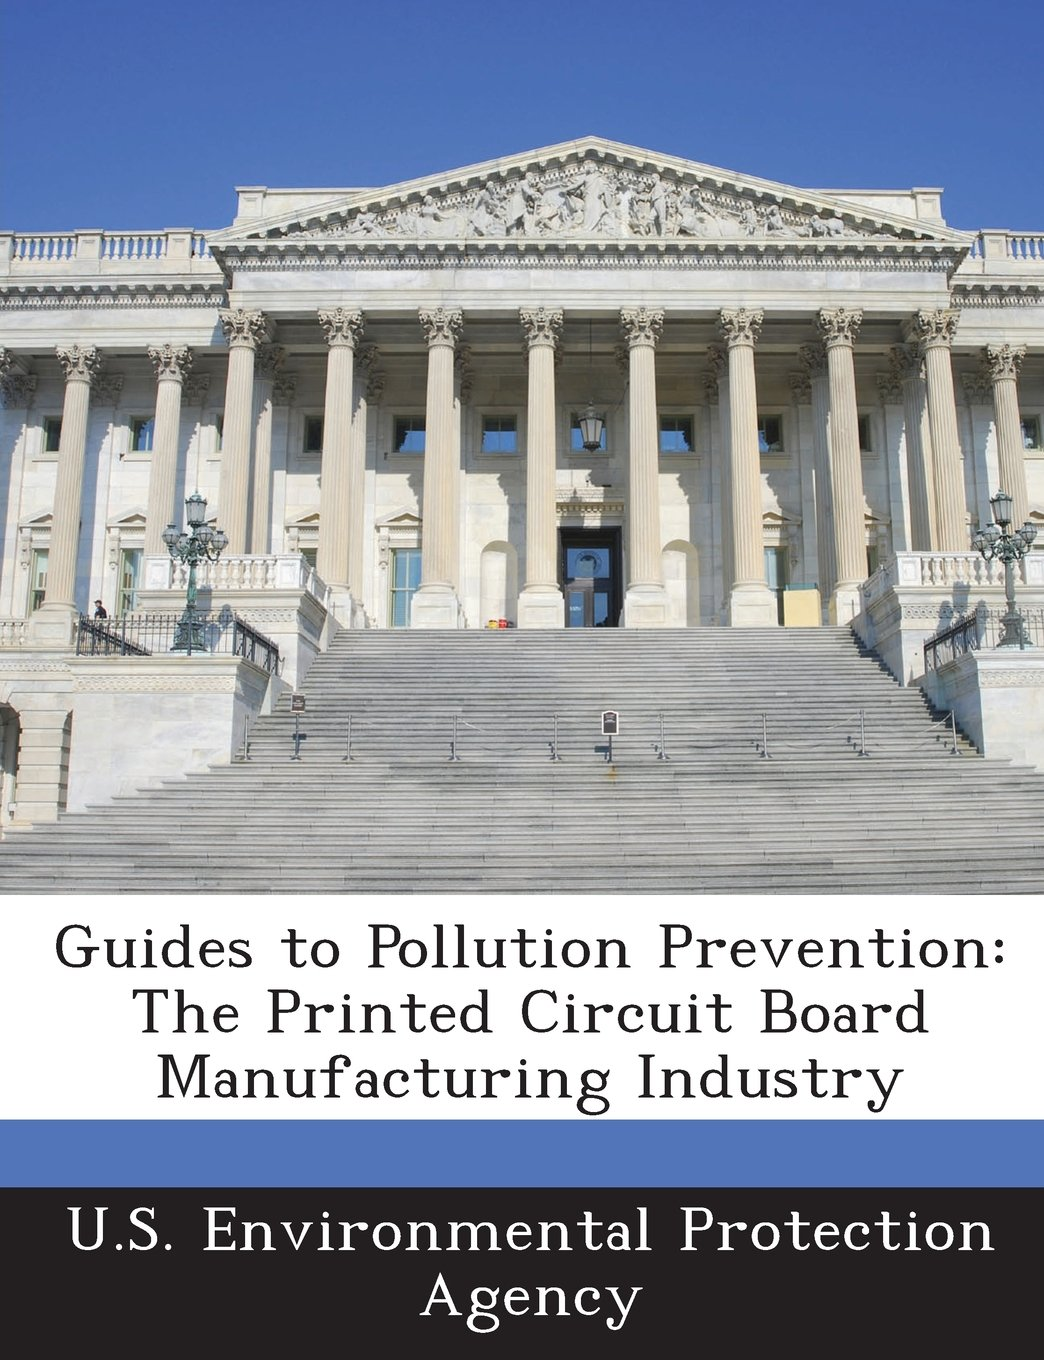 Guides to Pollution Prevention: The Printed Circuit Board